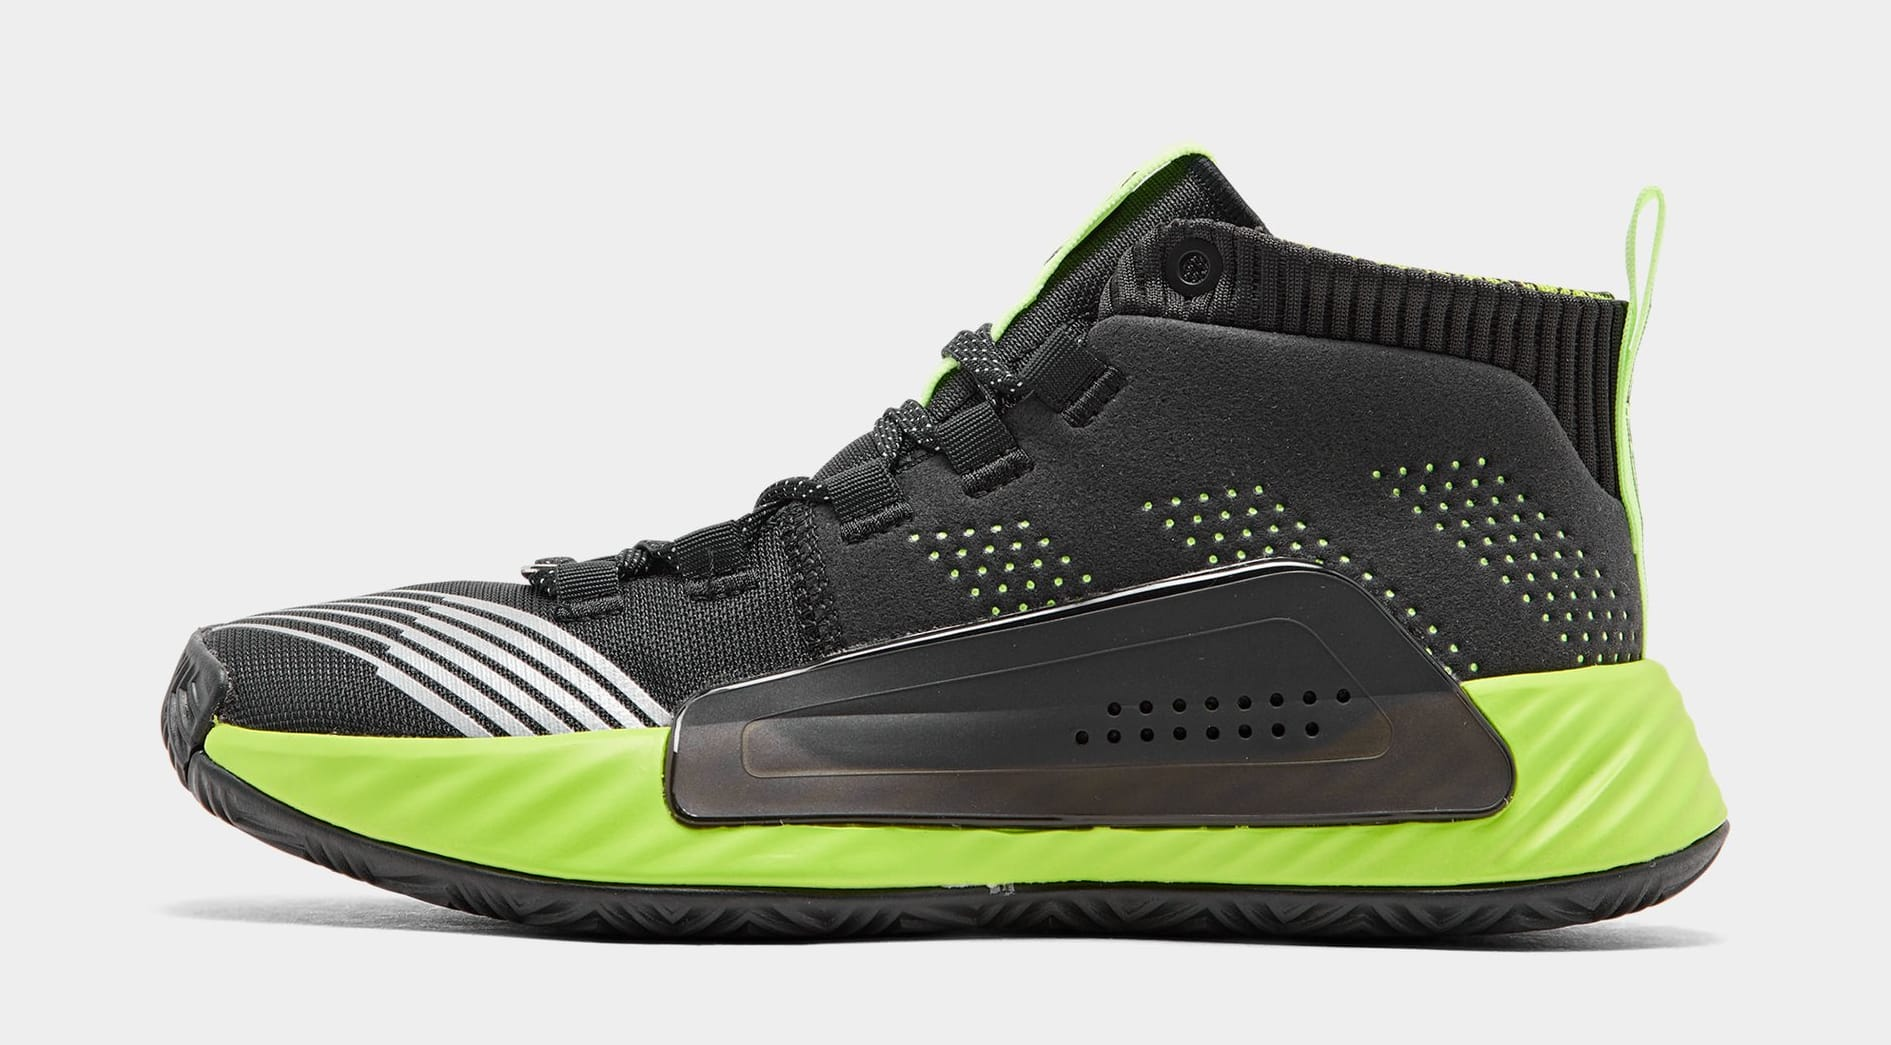 star-wars-adidas-dame-5-lateral